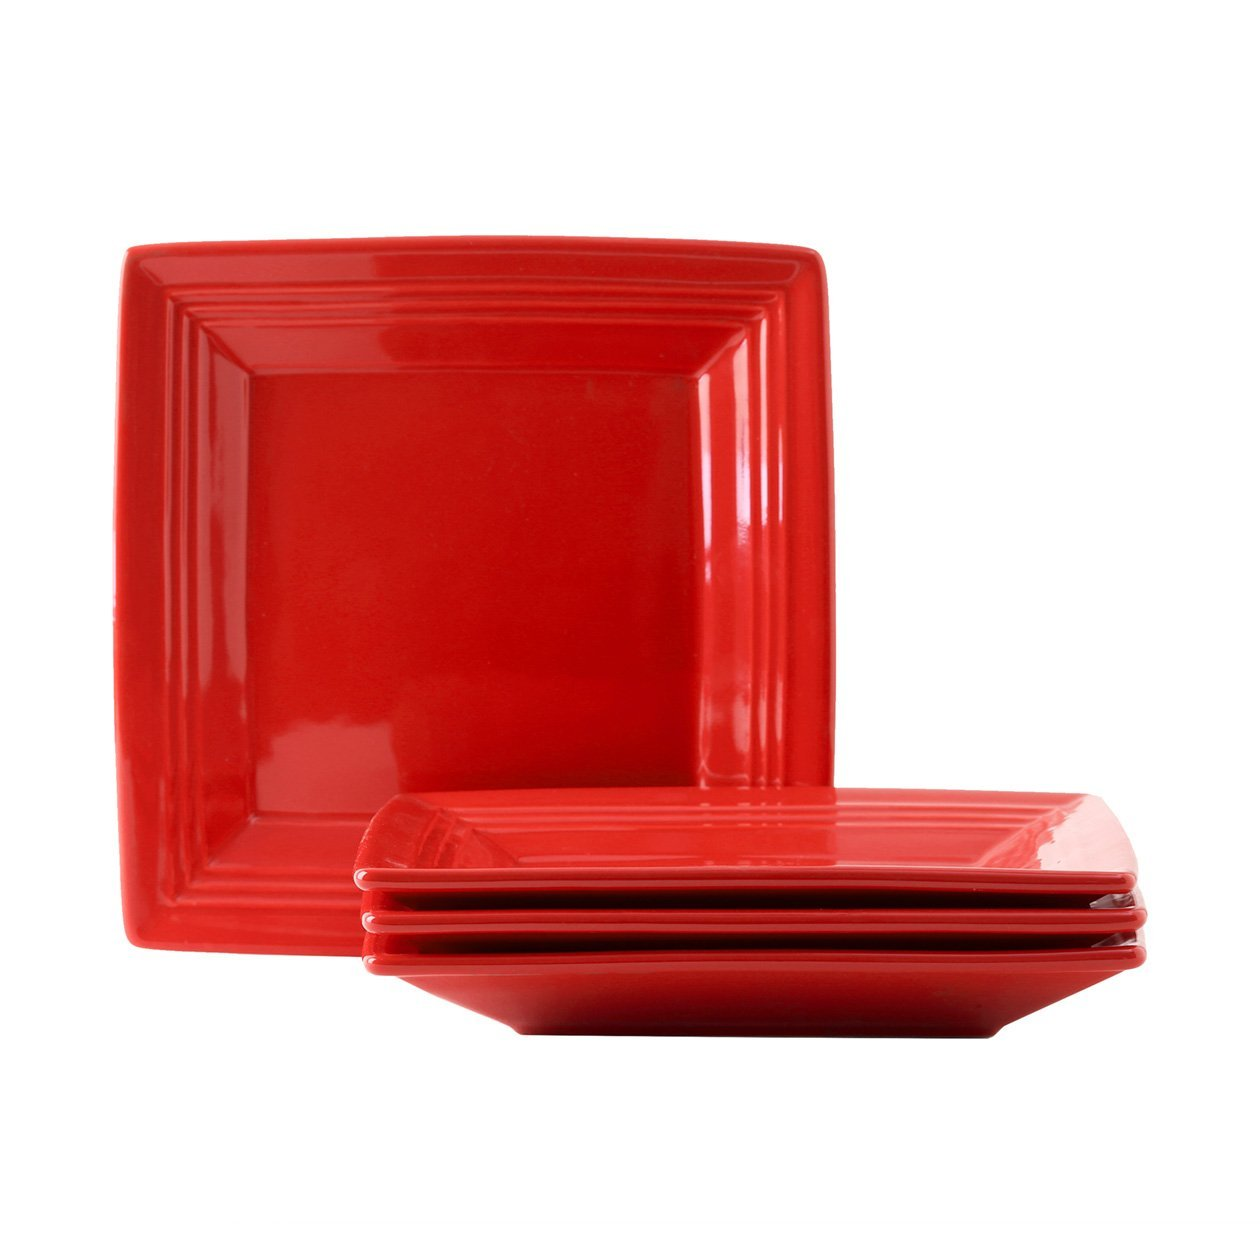 Tuxton Home Concentrix Square Plate (Set of 4), 8 1/2'', Cayenne Red; Heavy Duty; Chip Resistant; Lead and Cadmium Free; Freezer to Oven Safe up to 500F